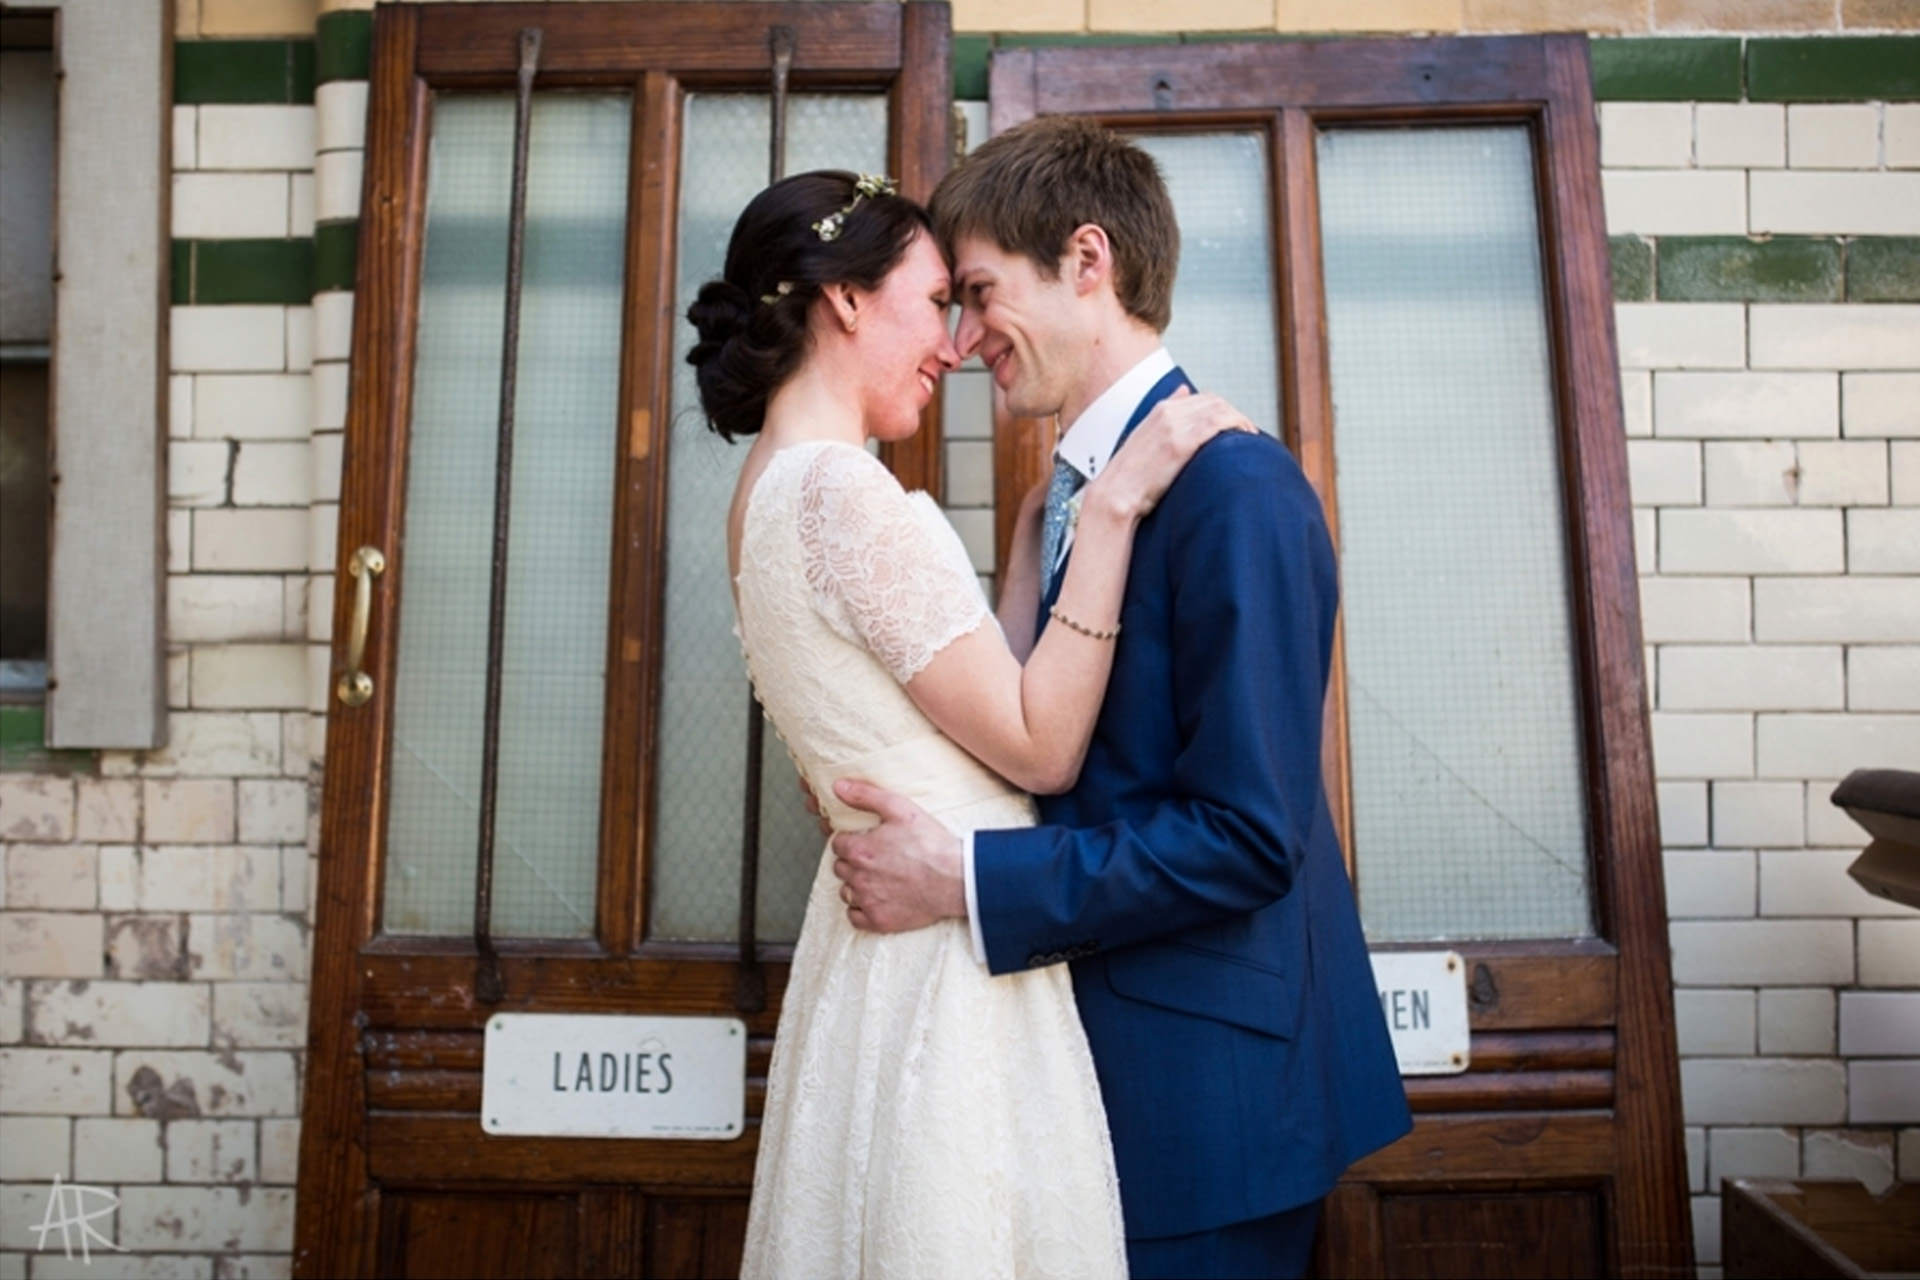 victoria baths wedding photography 12th april 2015 - Eclectic Hotel 2015